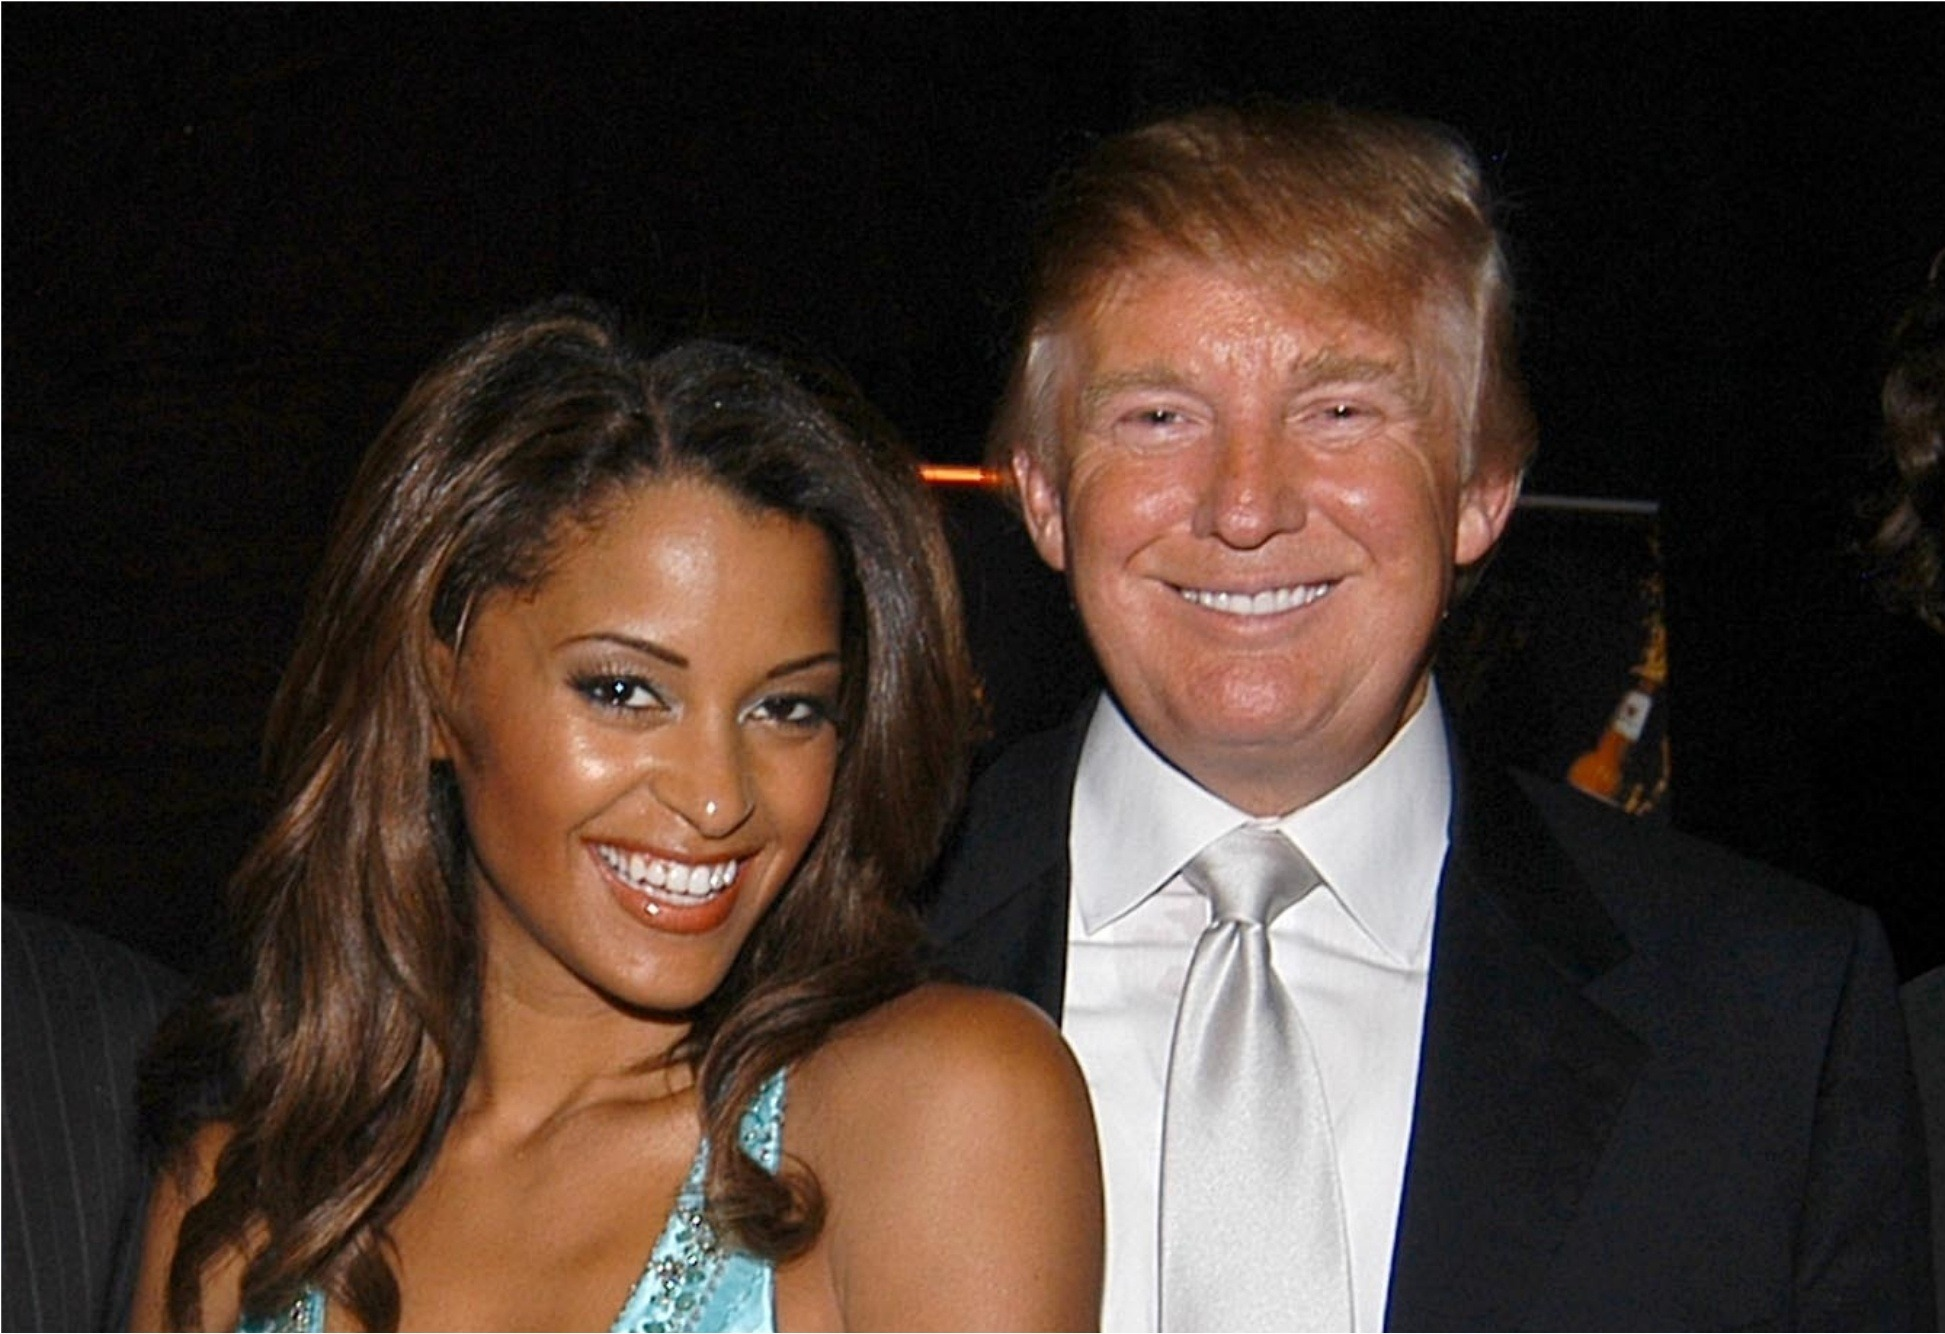 Claudia Jordan spills on Trump during her 'Celebrity Apprentice' days